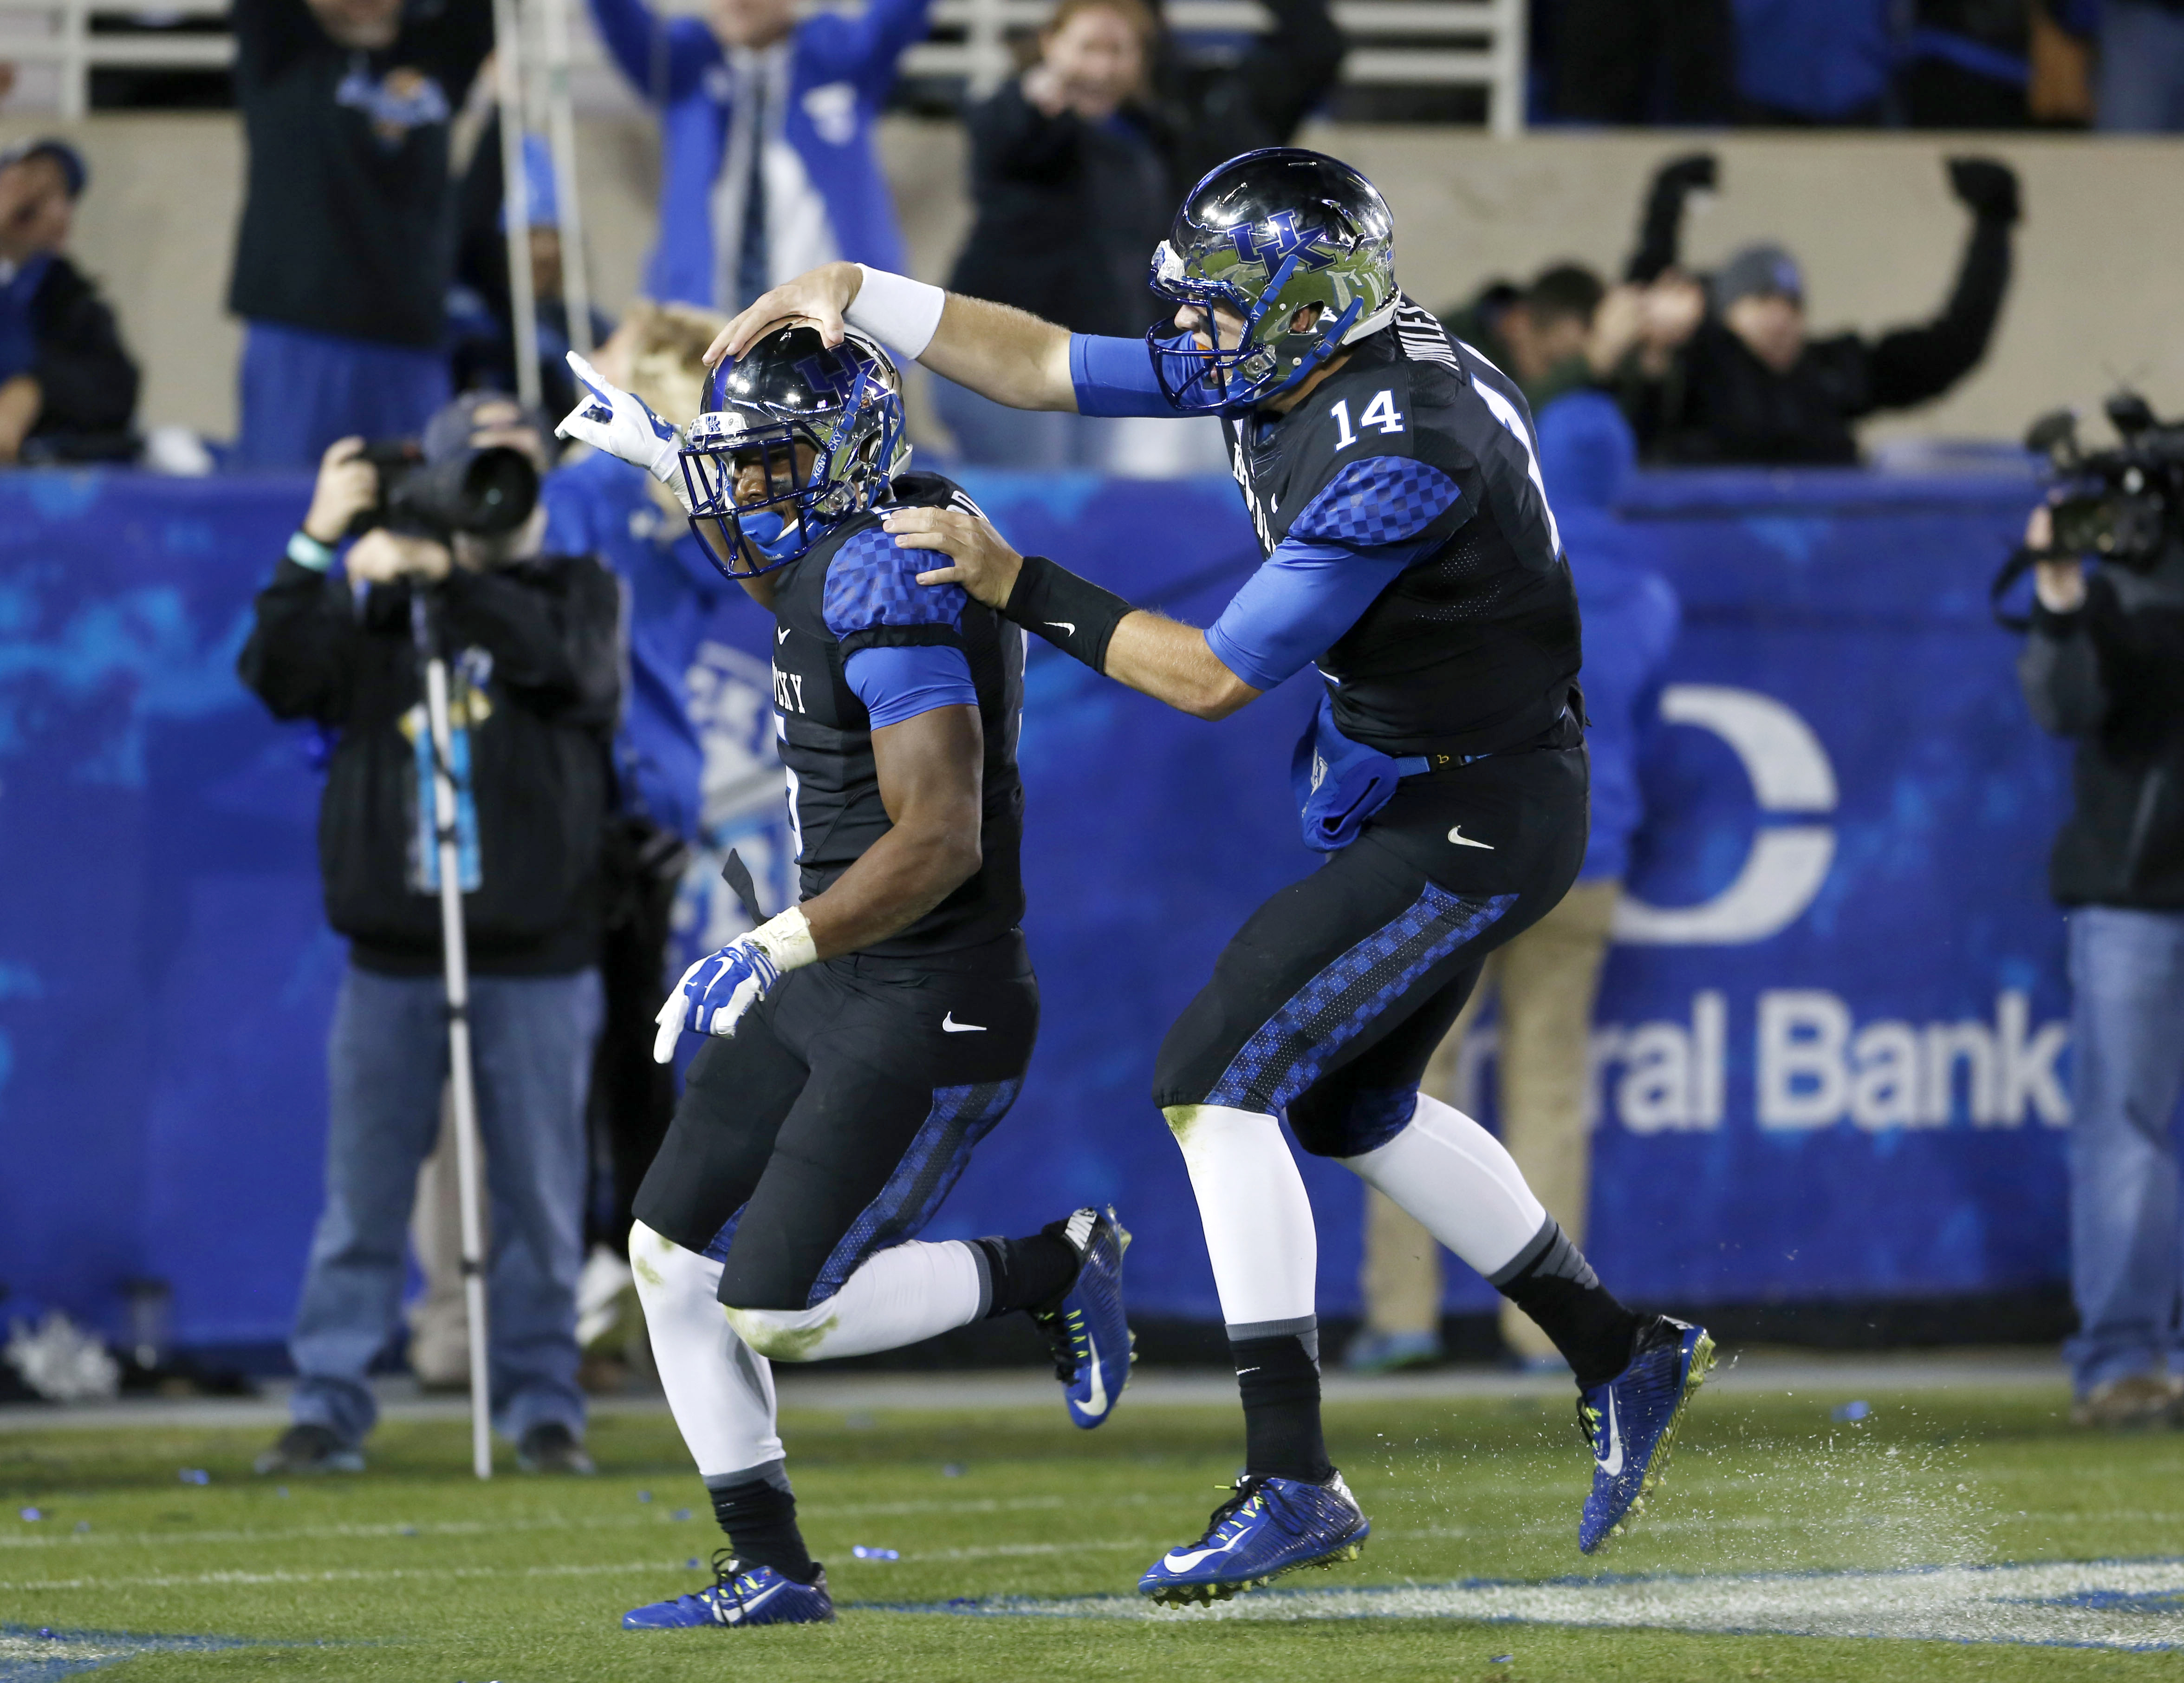 Kentucky Wildcats running back Braylon Heard (5) celebrates with quarterback Patrick Towles (14) during the game against the South Carolina Gamecocks in the first half at Commonwealth Stadium. (Mark Zerof-USA TODAY Sports)